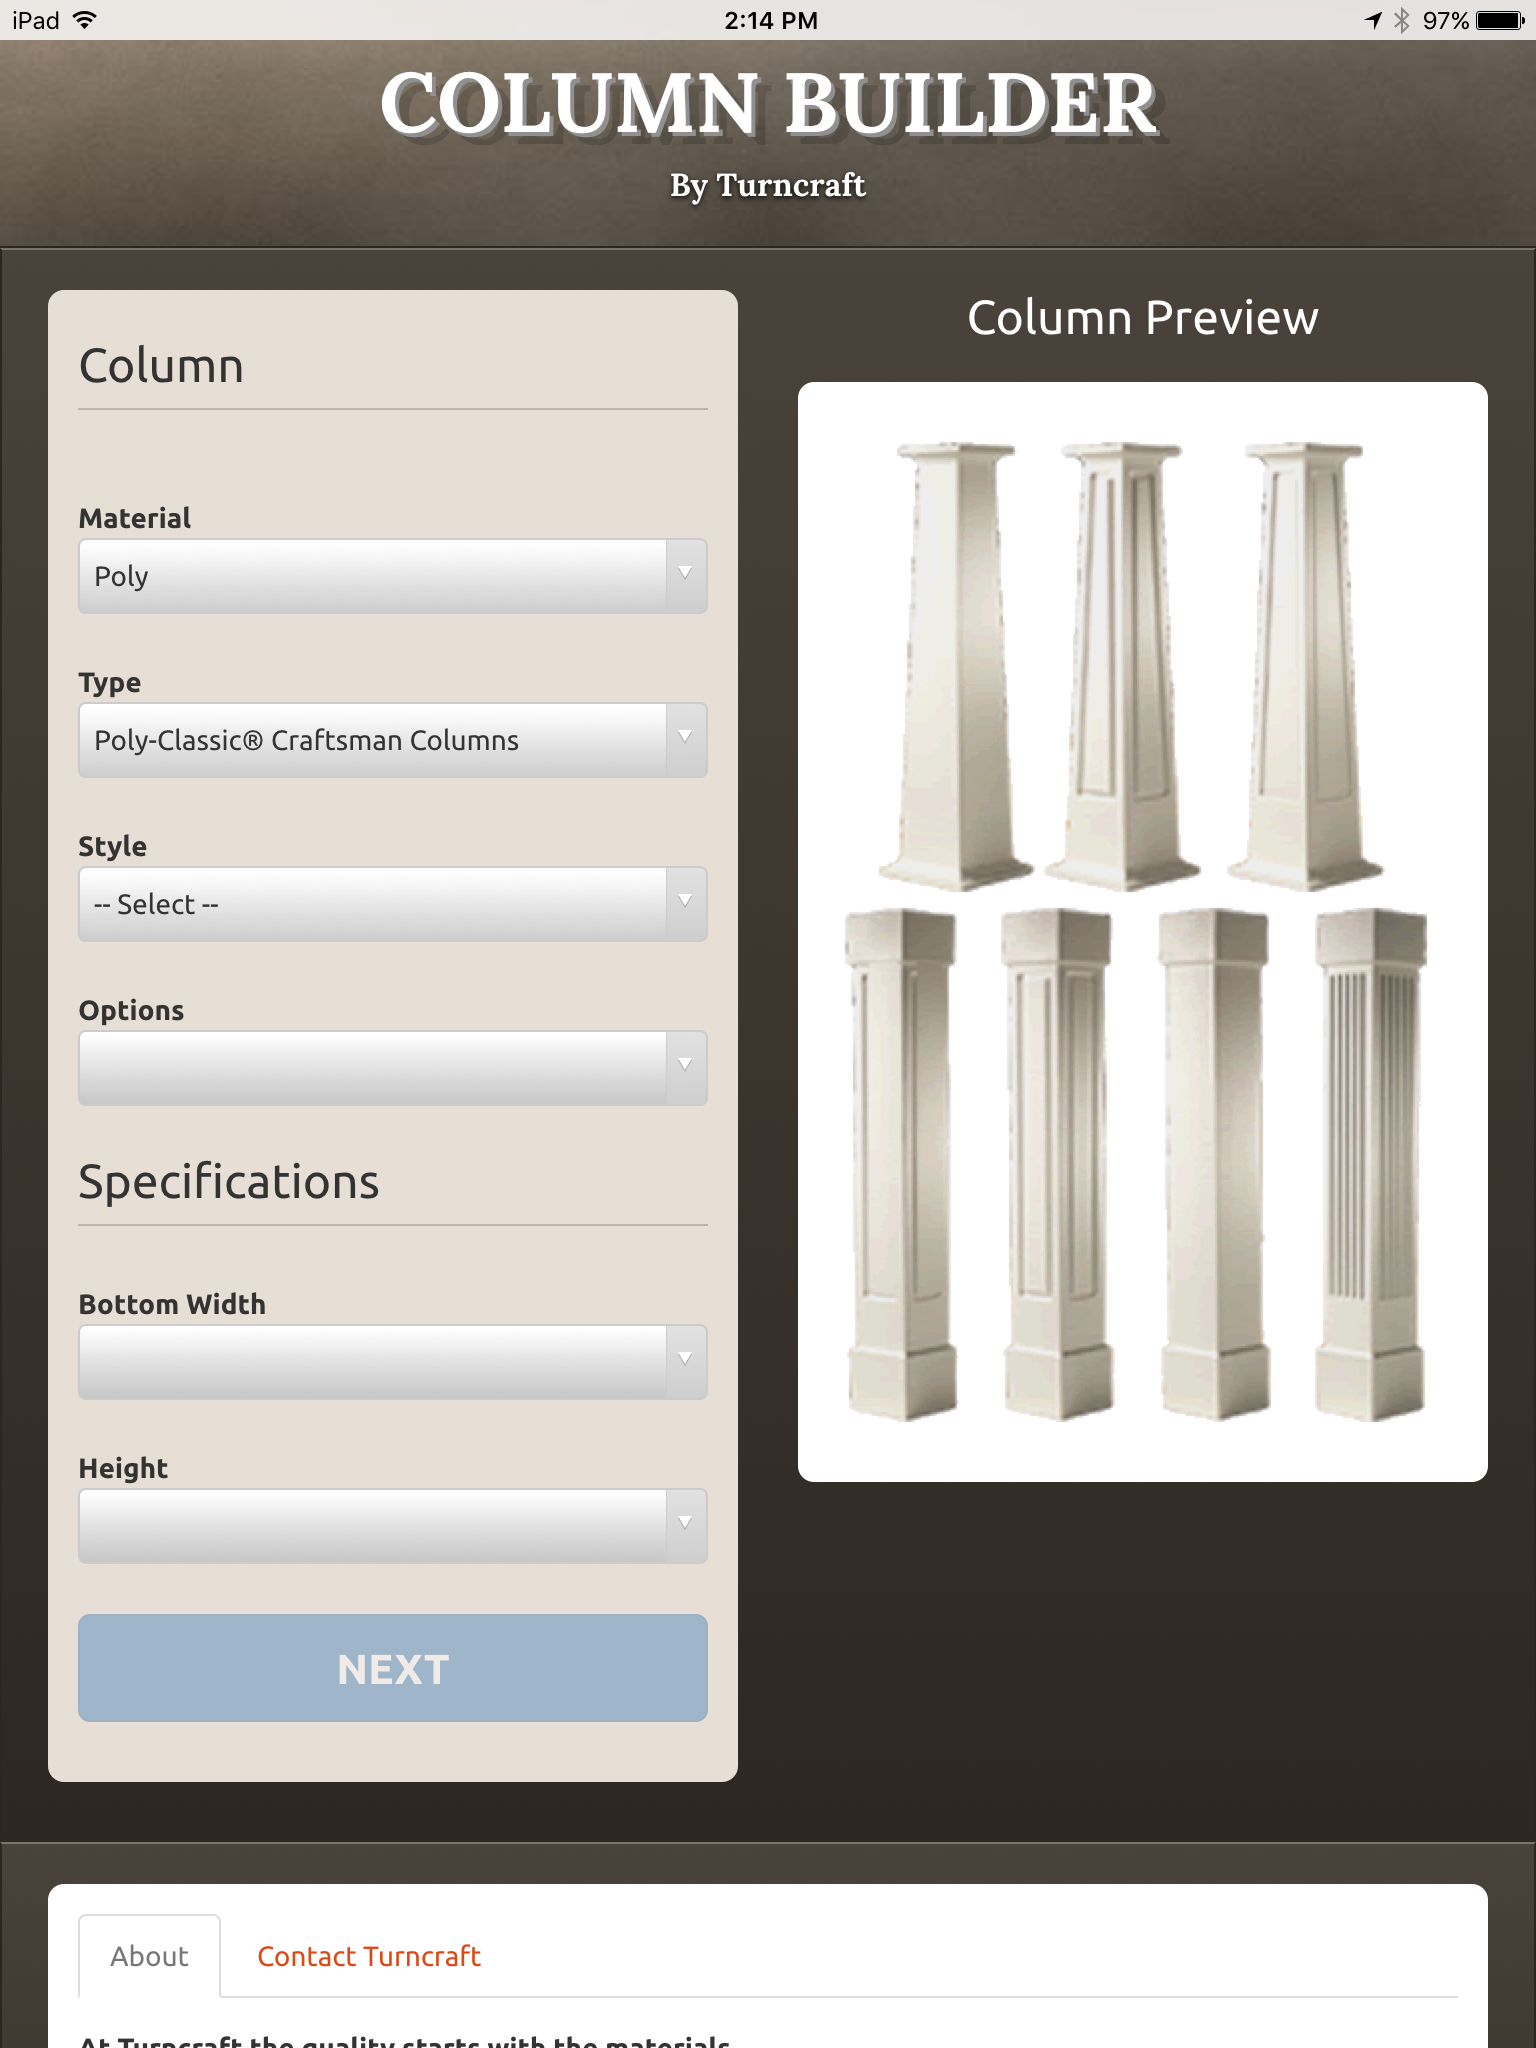 Tool provided by Turncraft to develop a column specification.